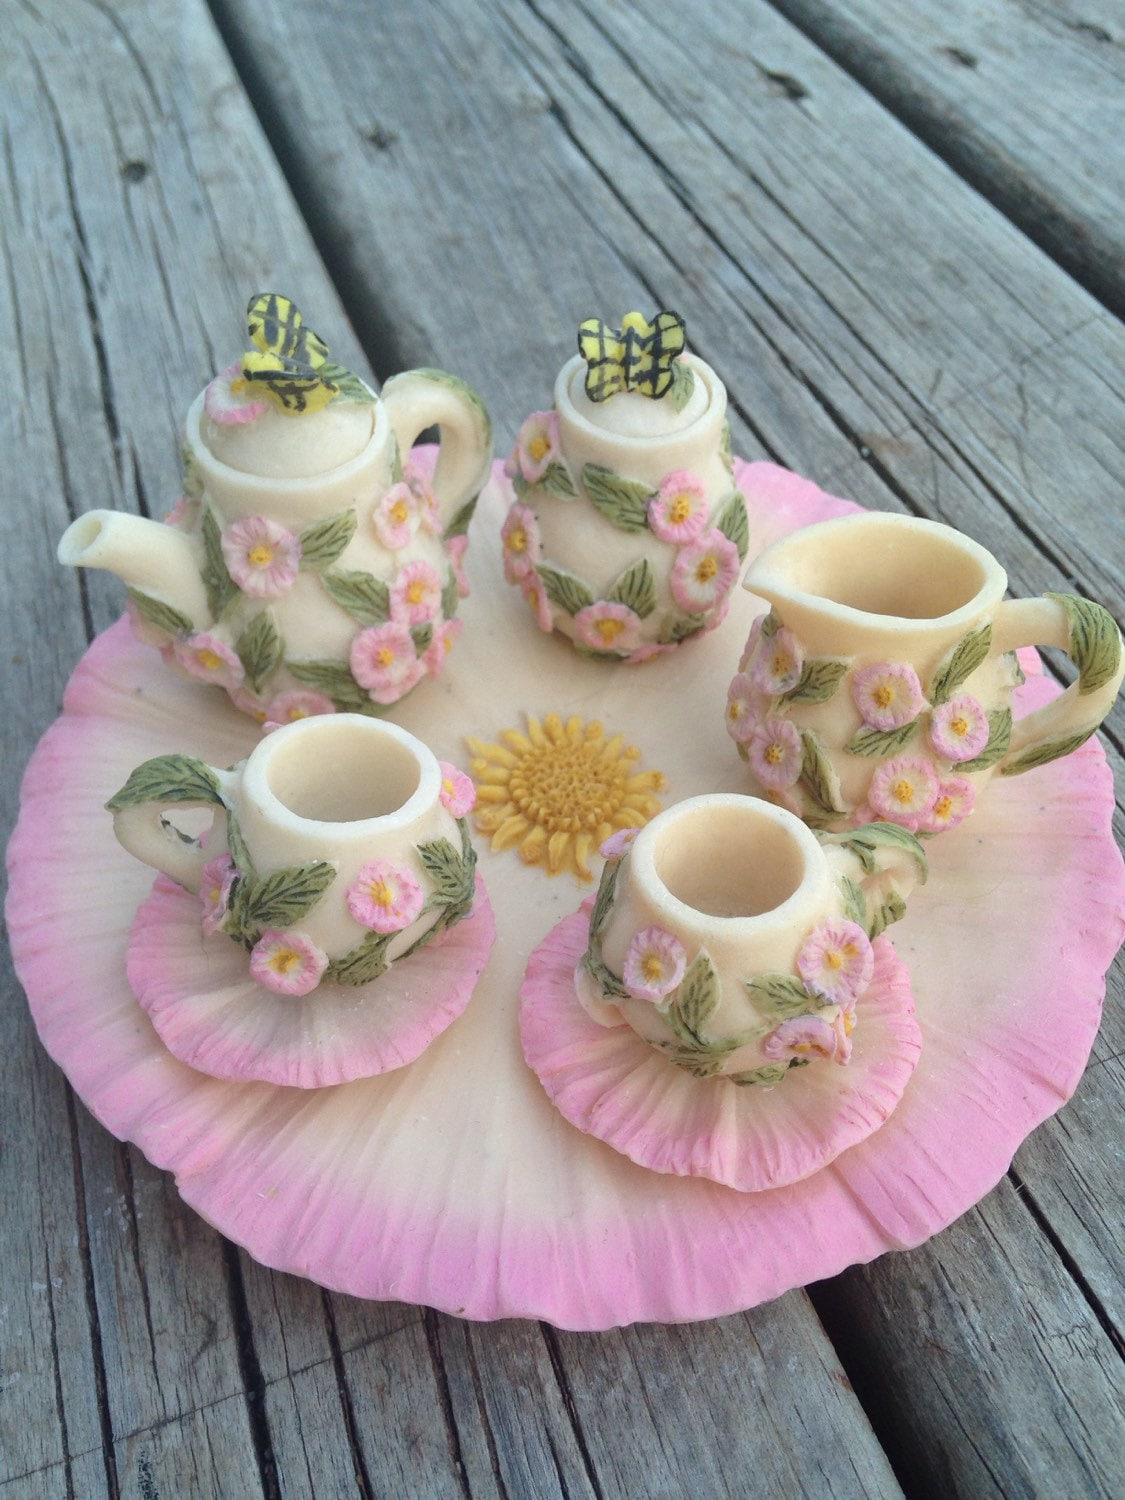 miniature poly resin flower tea set fairy garden dolls. Black Bedroom Furniture Sets. Home Design Ideas